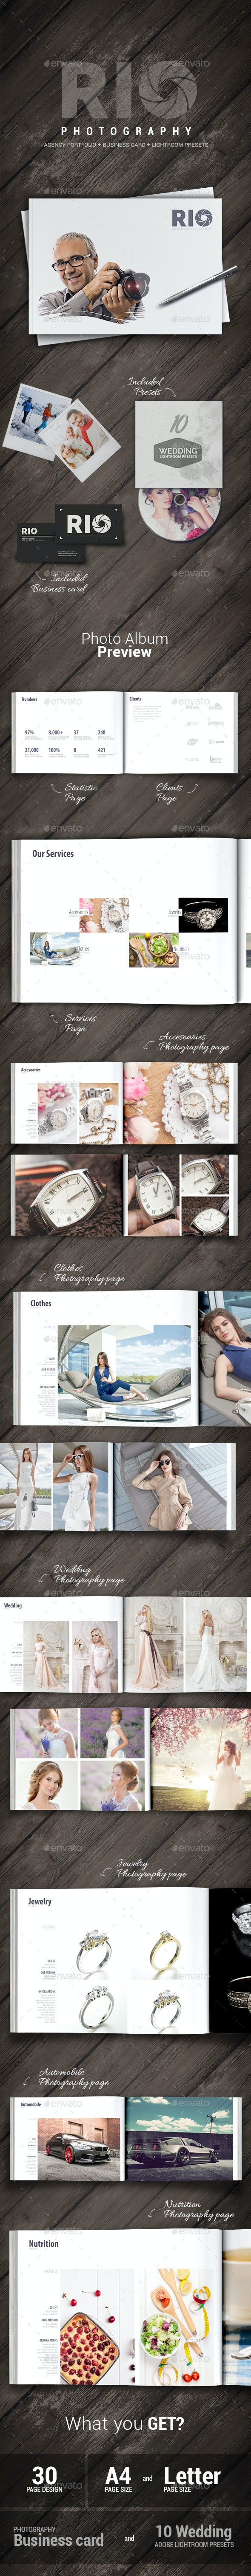 Rio Photography - Portfolio Album - Photo Albums Print Templates